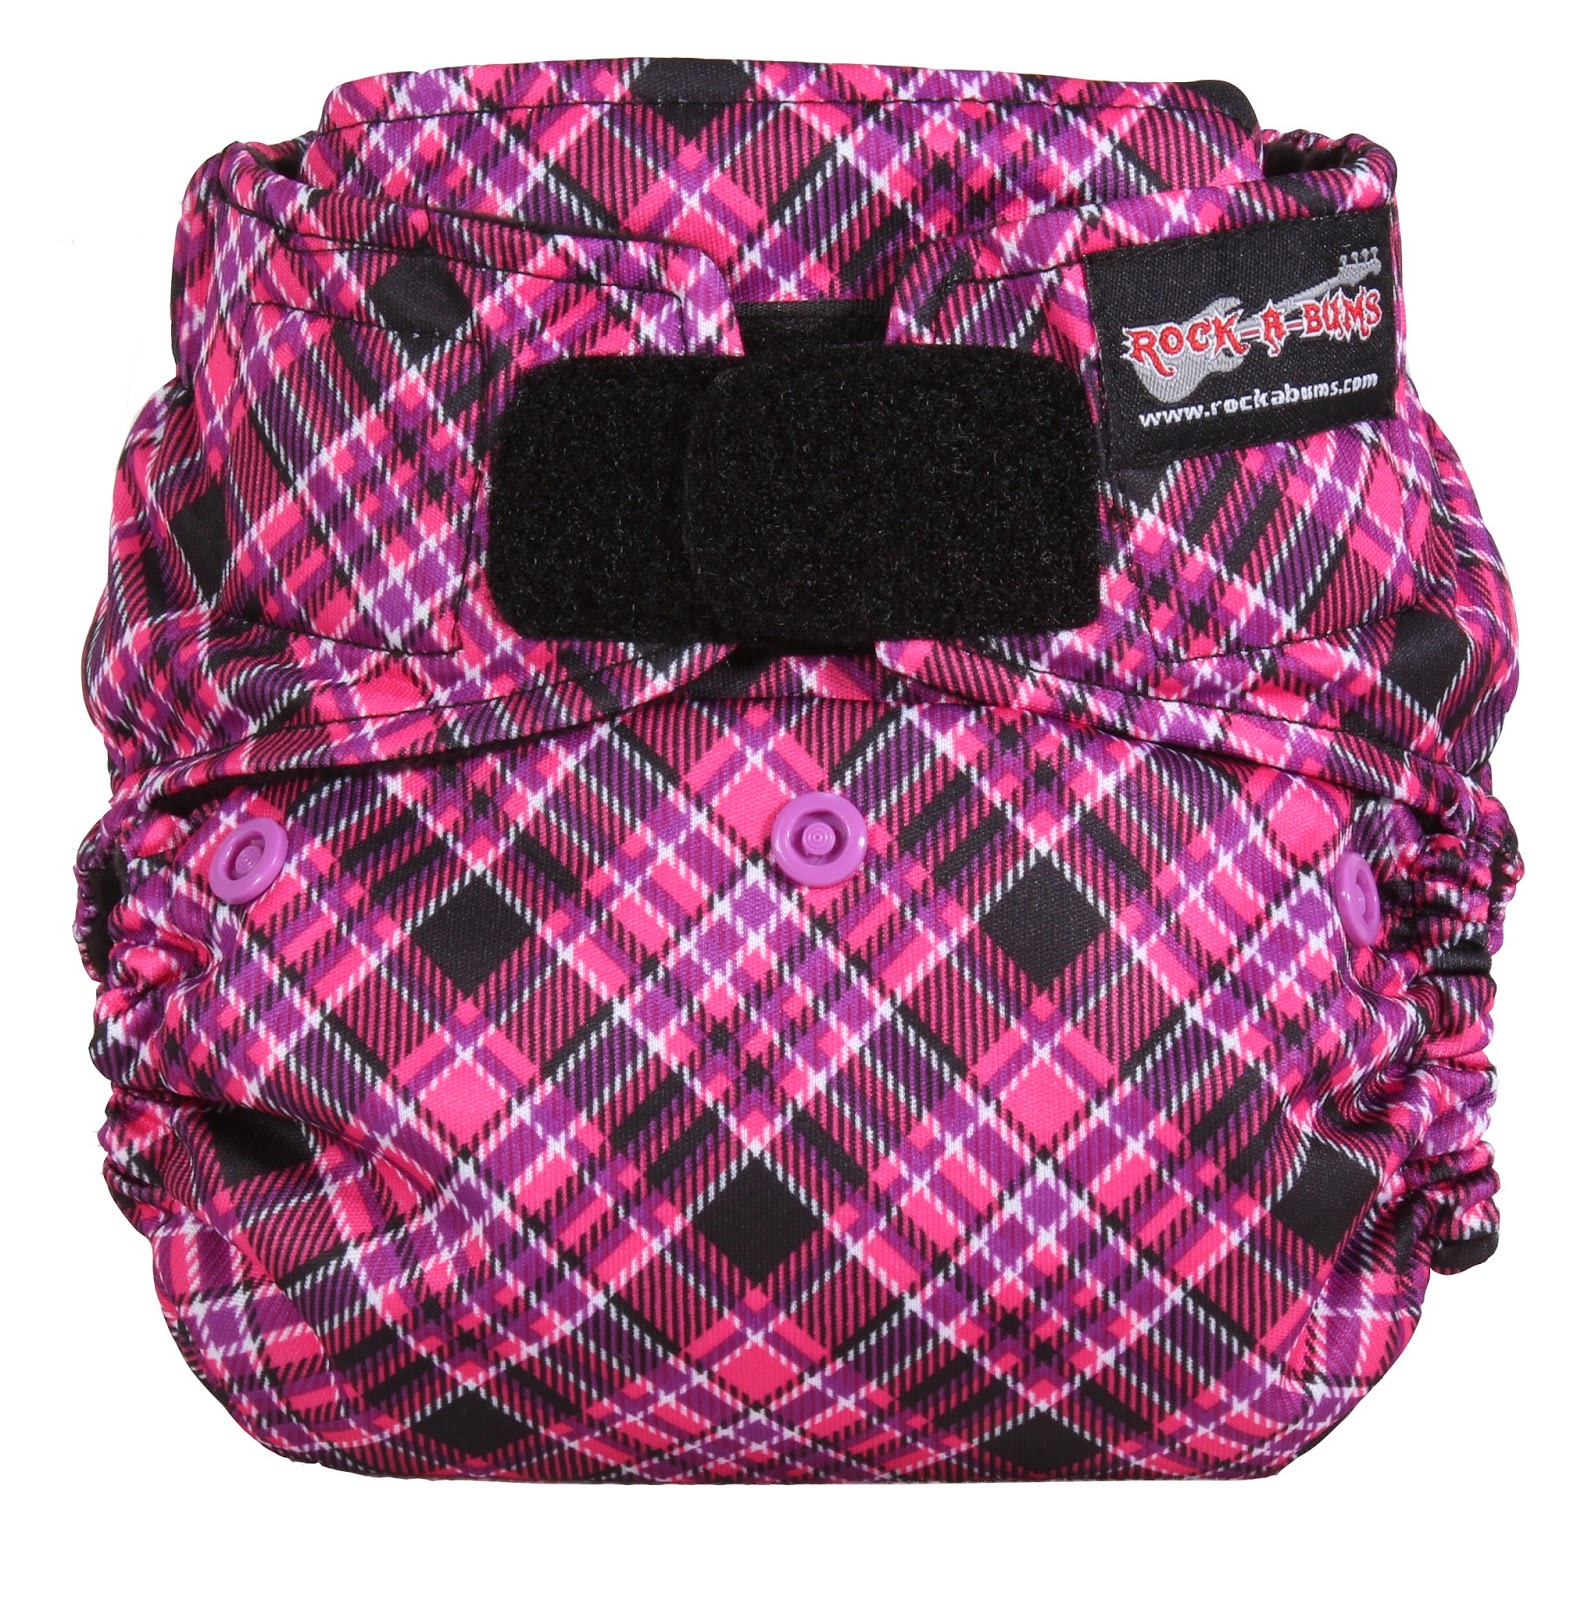 http://www.rockabums.com/shop/punk-plaid-pink-2-0-includes-2-reusable-inserts/